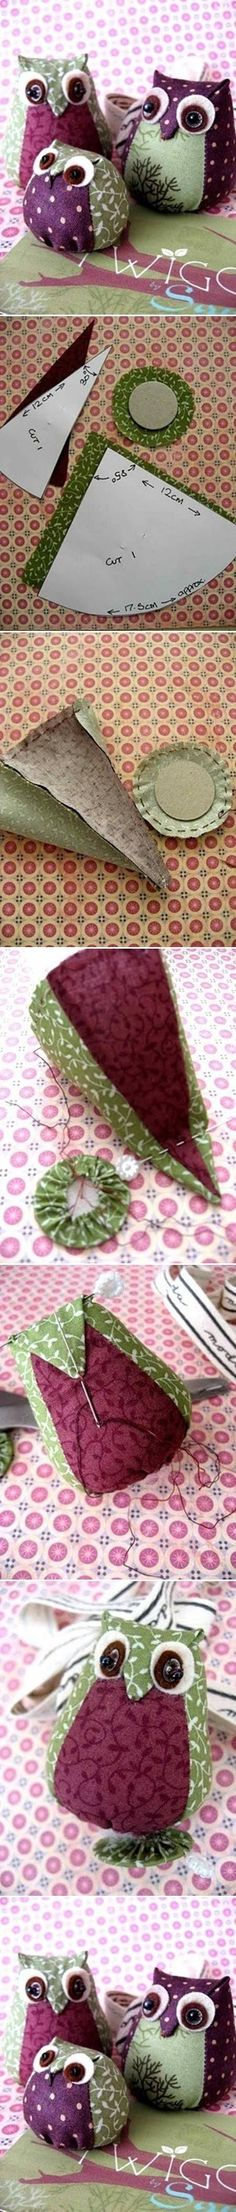 pincushion Sewing Project: DIY Easy Fabric Owl. Made one of these at Hartley.